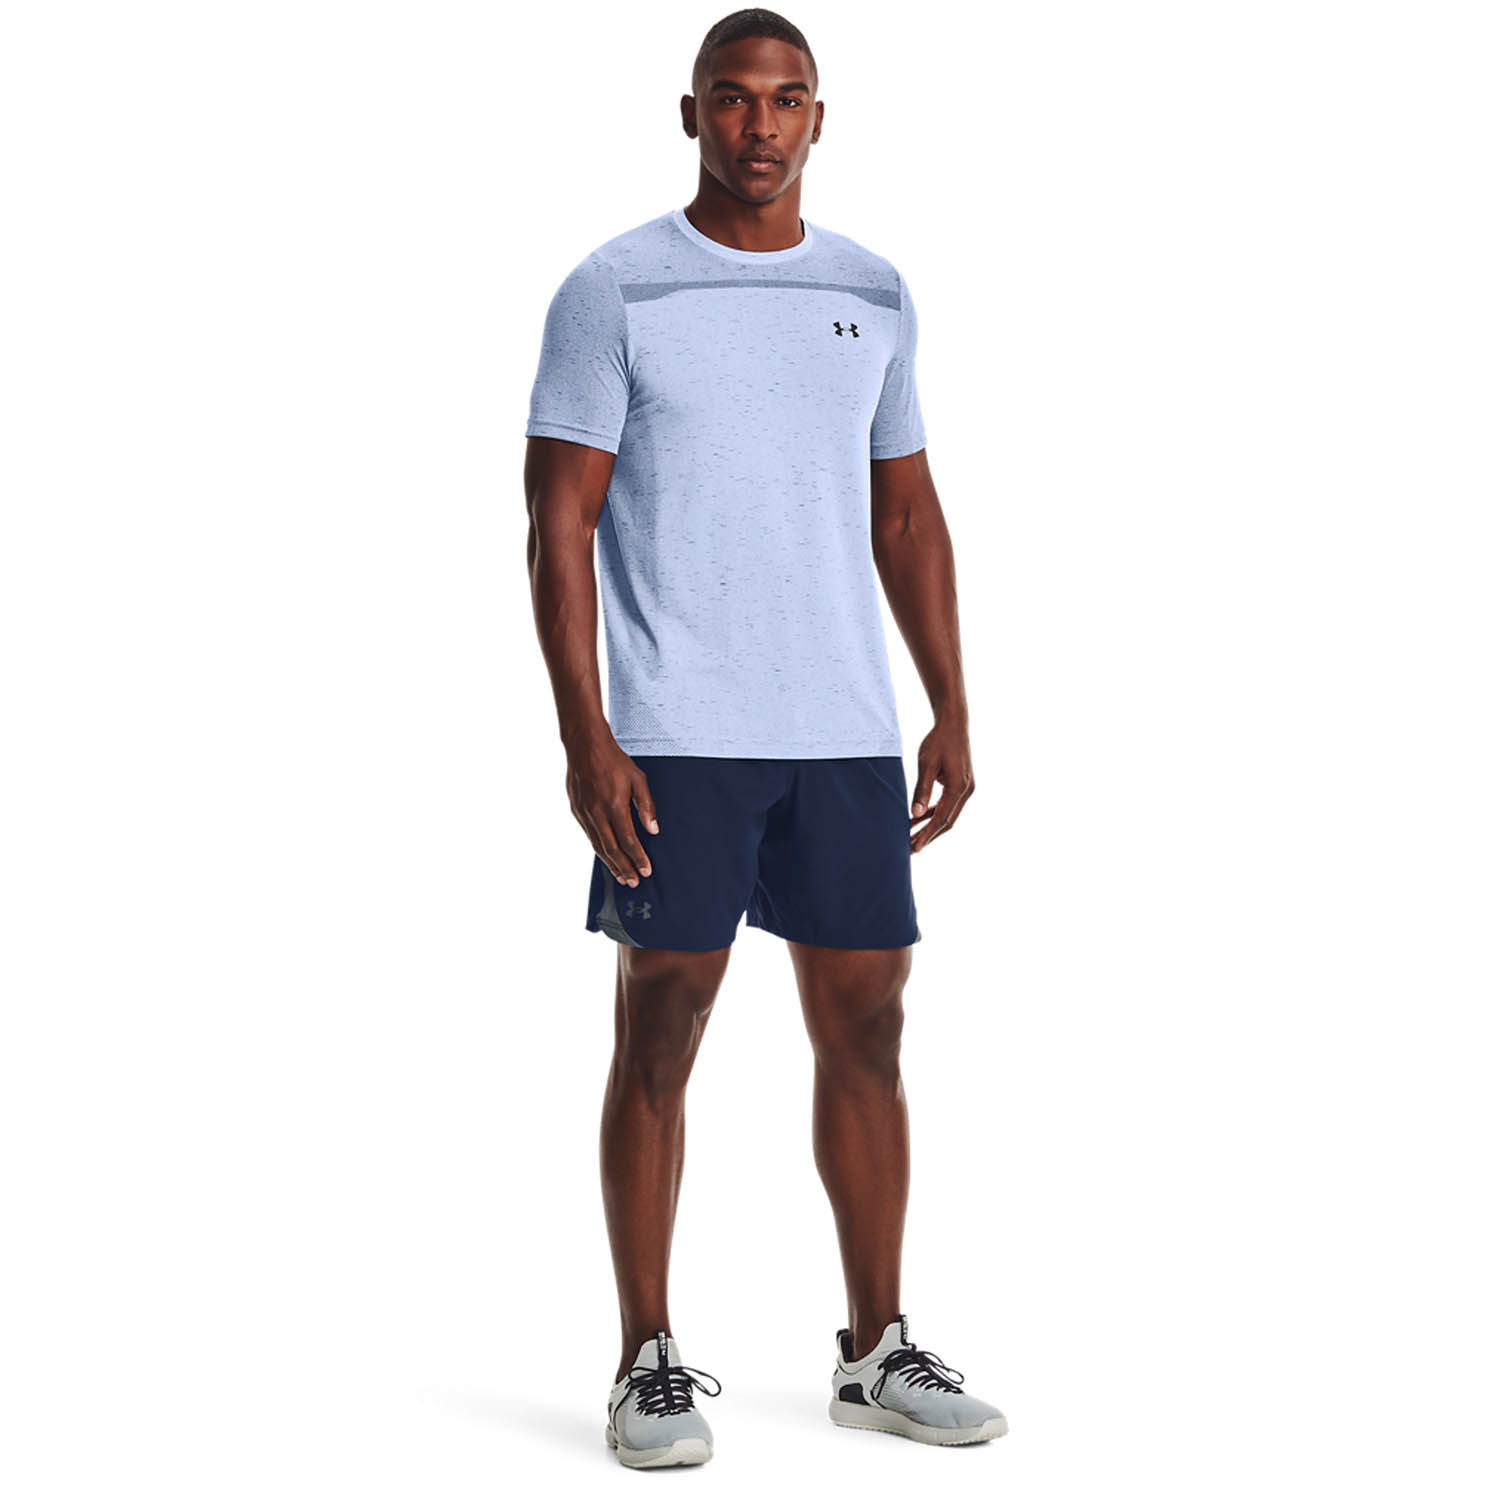 Under Armour Seamless T-Shirt - Isotope Blue